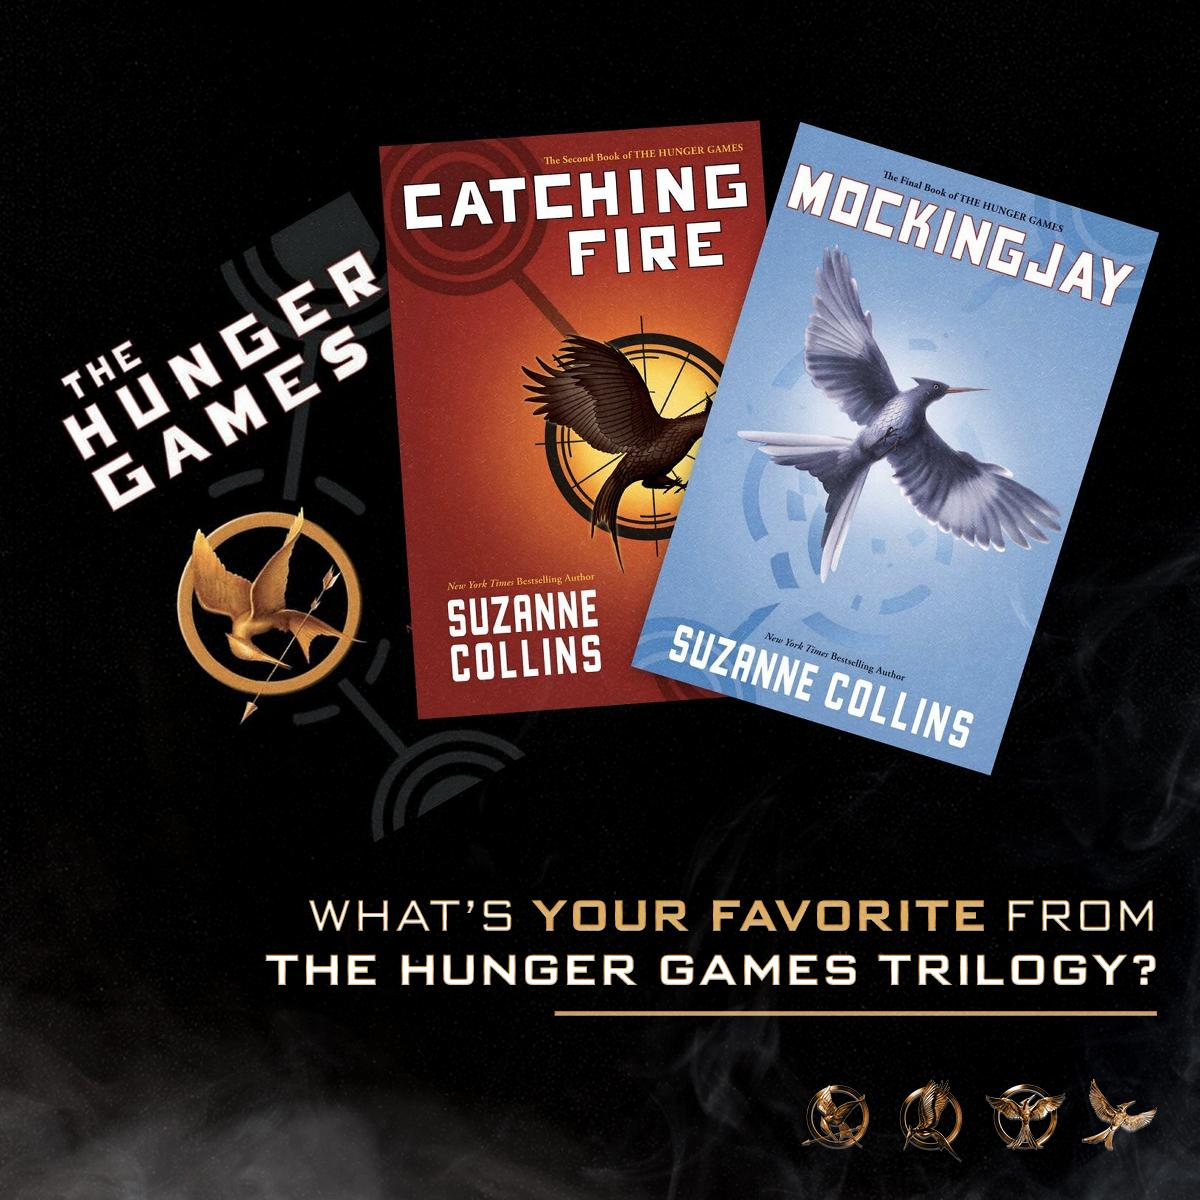 Which is your favorite from the trilogy? 📚 #HungerGames #BookLoversDay https://t.co/ymAiE2sZJp